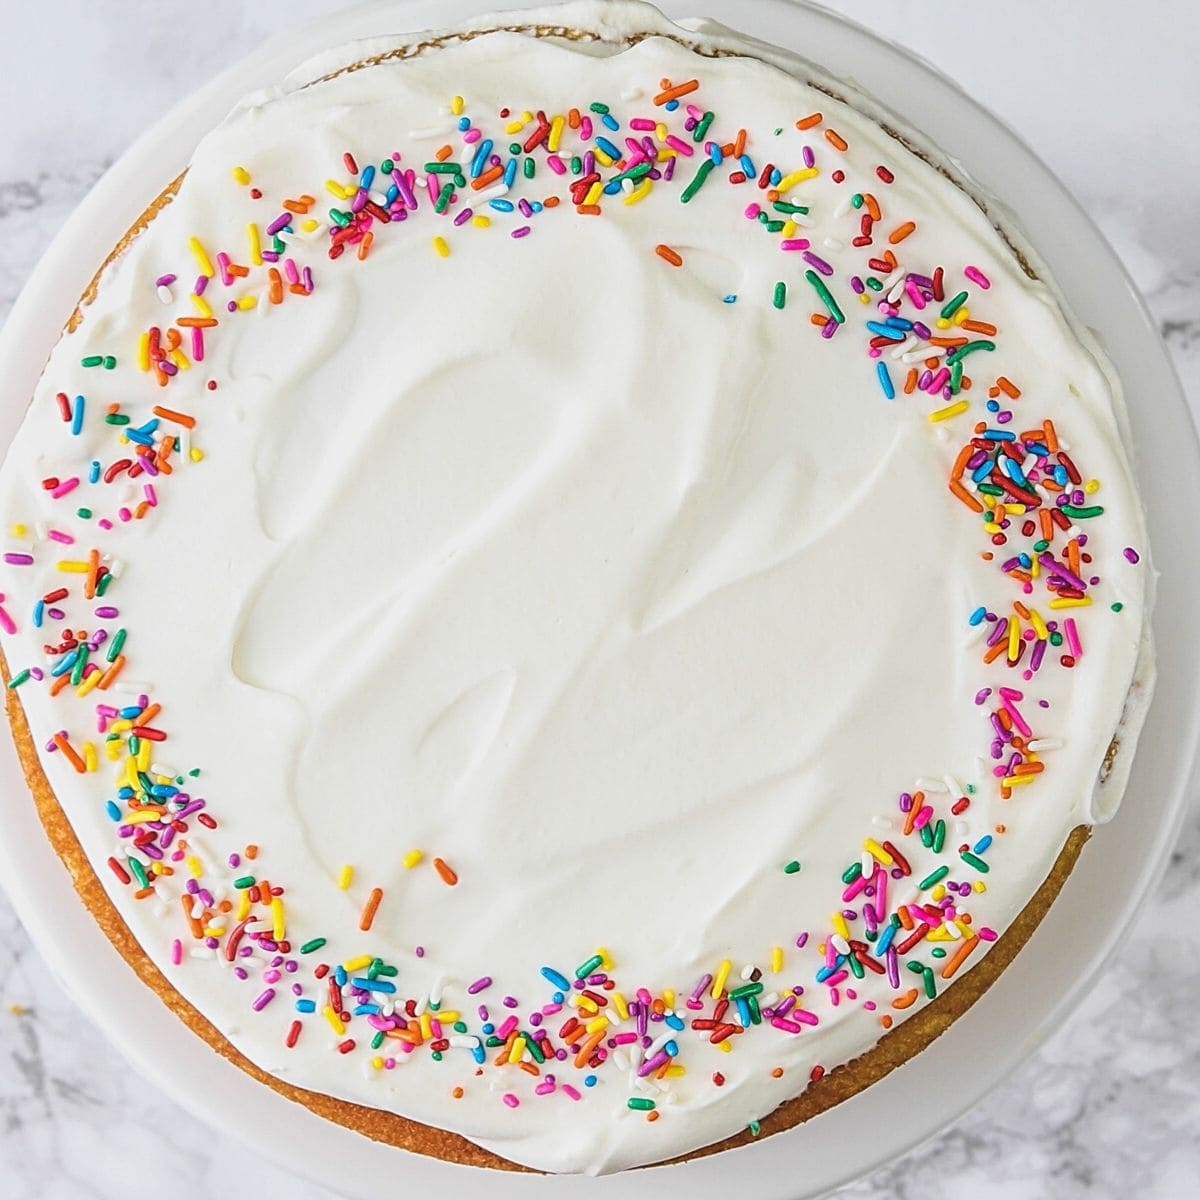 Top view of eggless vanilla cake frosted and decorated with sprinkles.